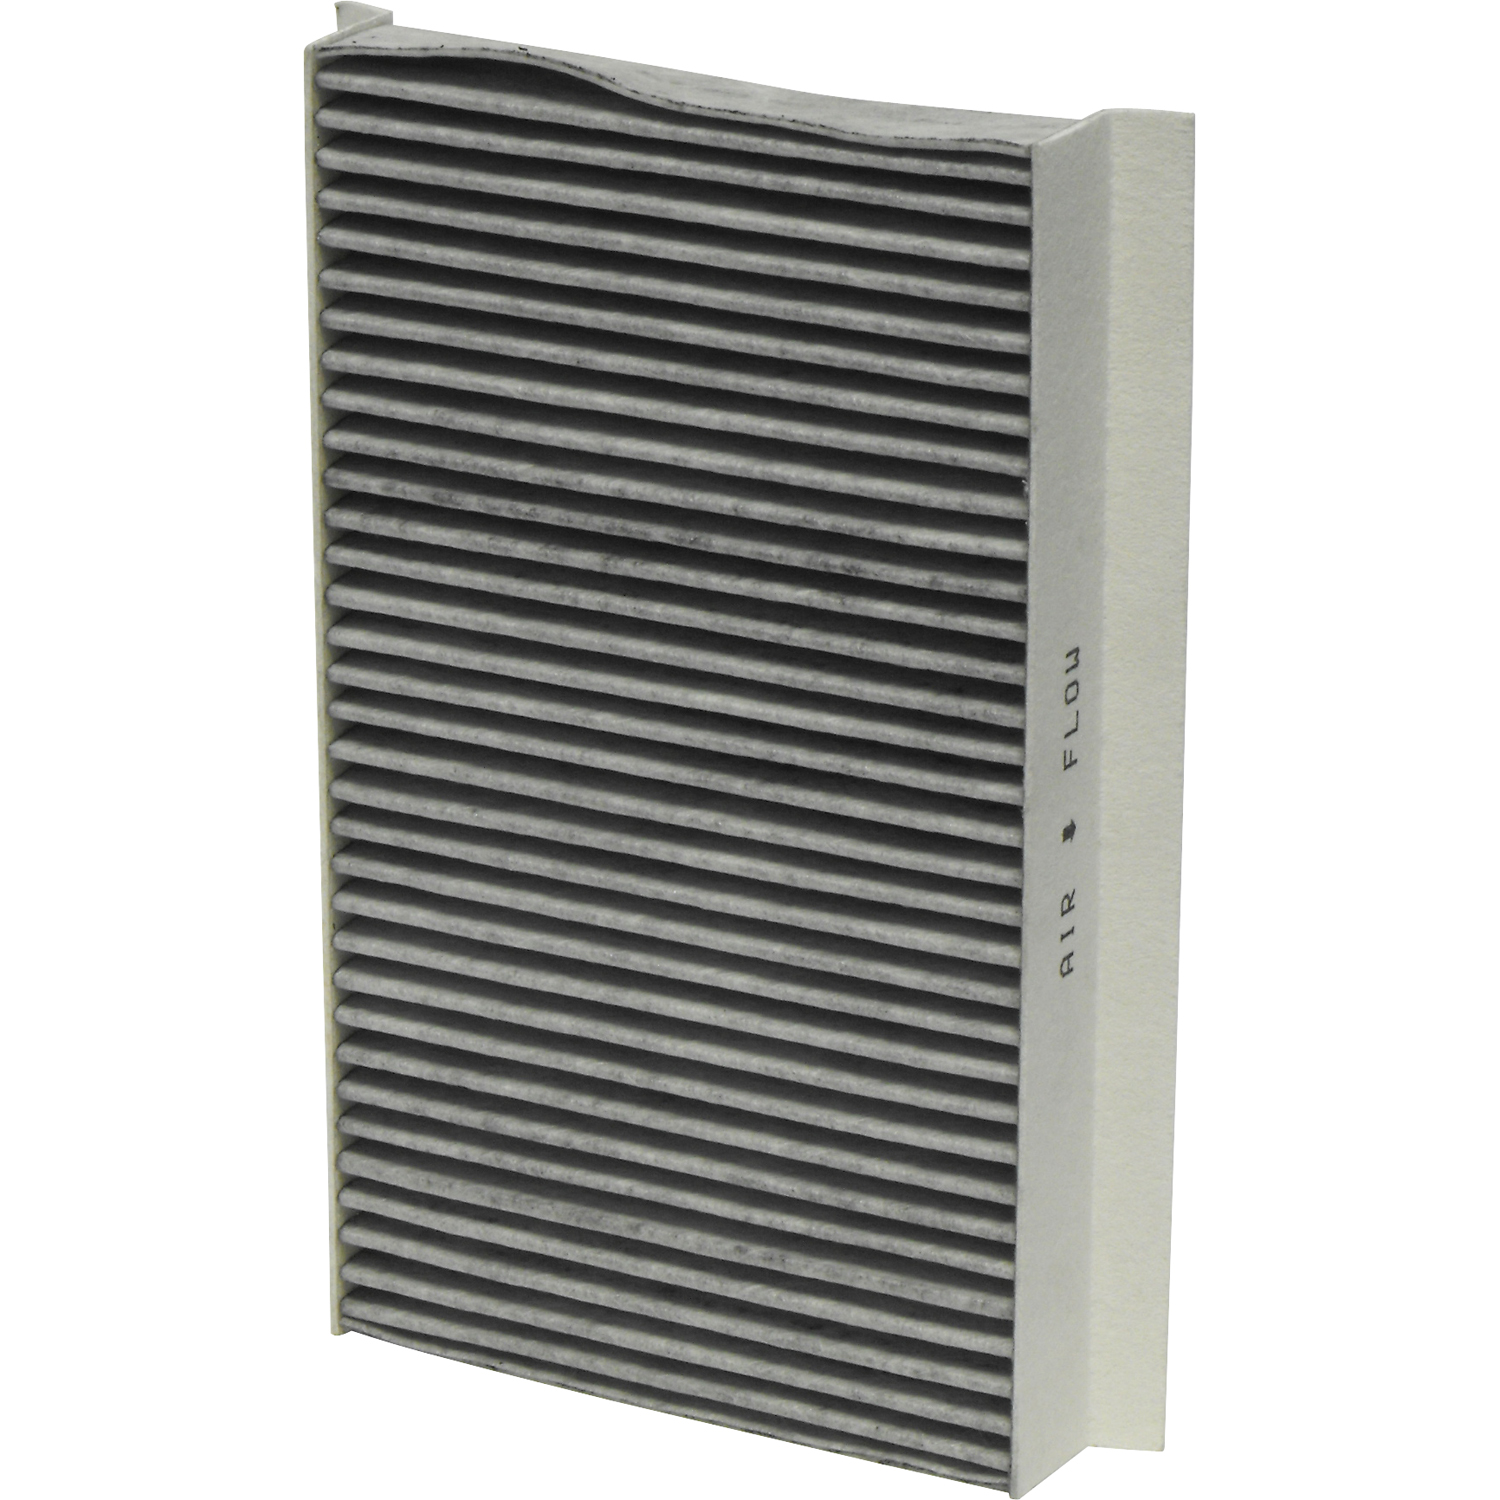 Charcoal Cabin Air Filter FI 1124C